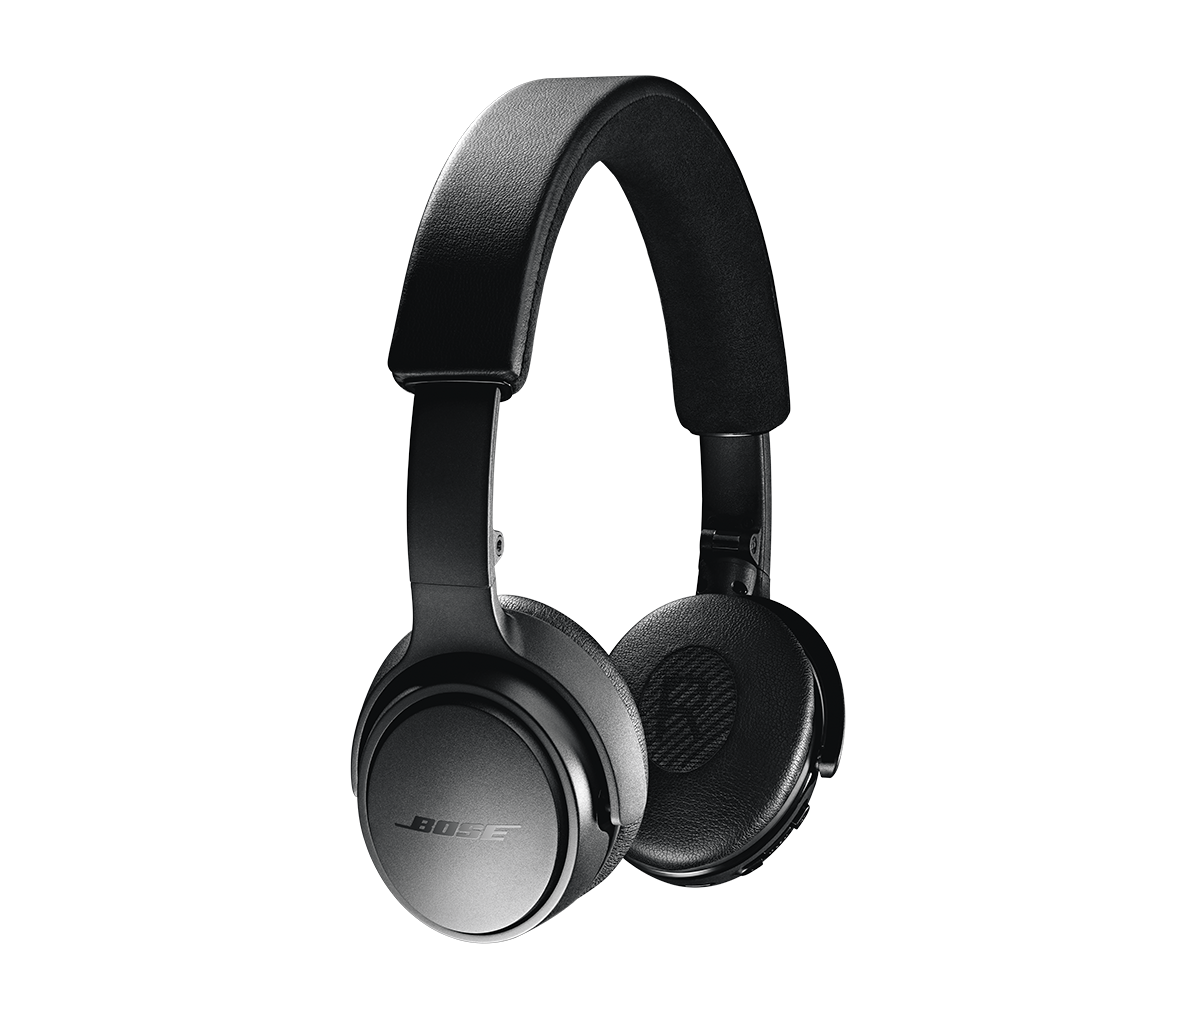 Bose_Cuffie_onear_wireless